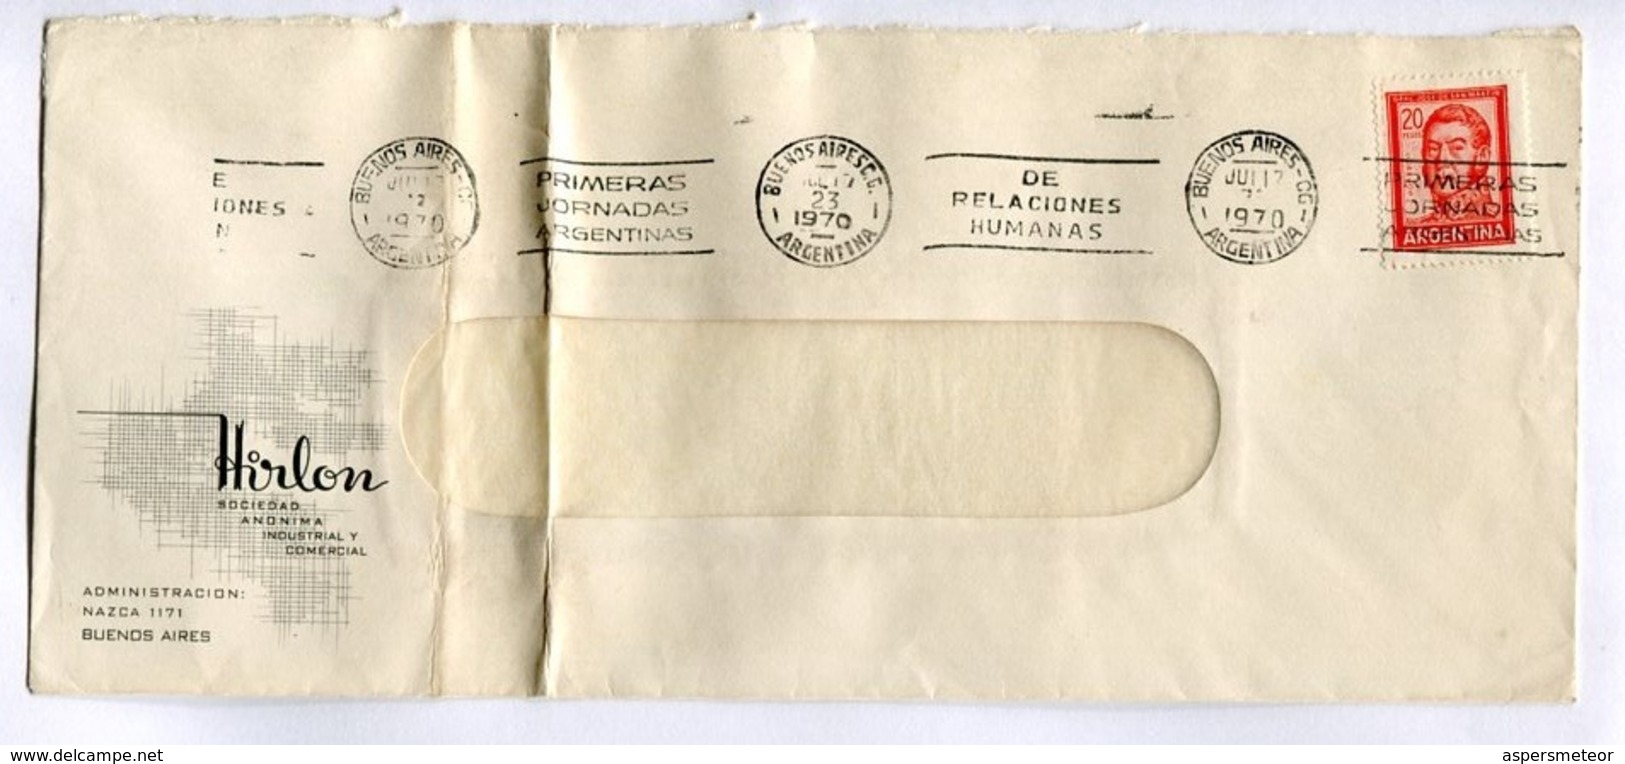 """ARGENTINA COMMERCIAL COVER - CIRCULATED FROM """"HIRLON"""" BUENOS AIRES. YEAR 1970 FRANKING MECHANIC -LILHU - Storia Postale"""